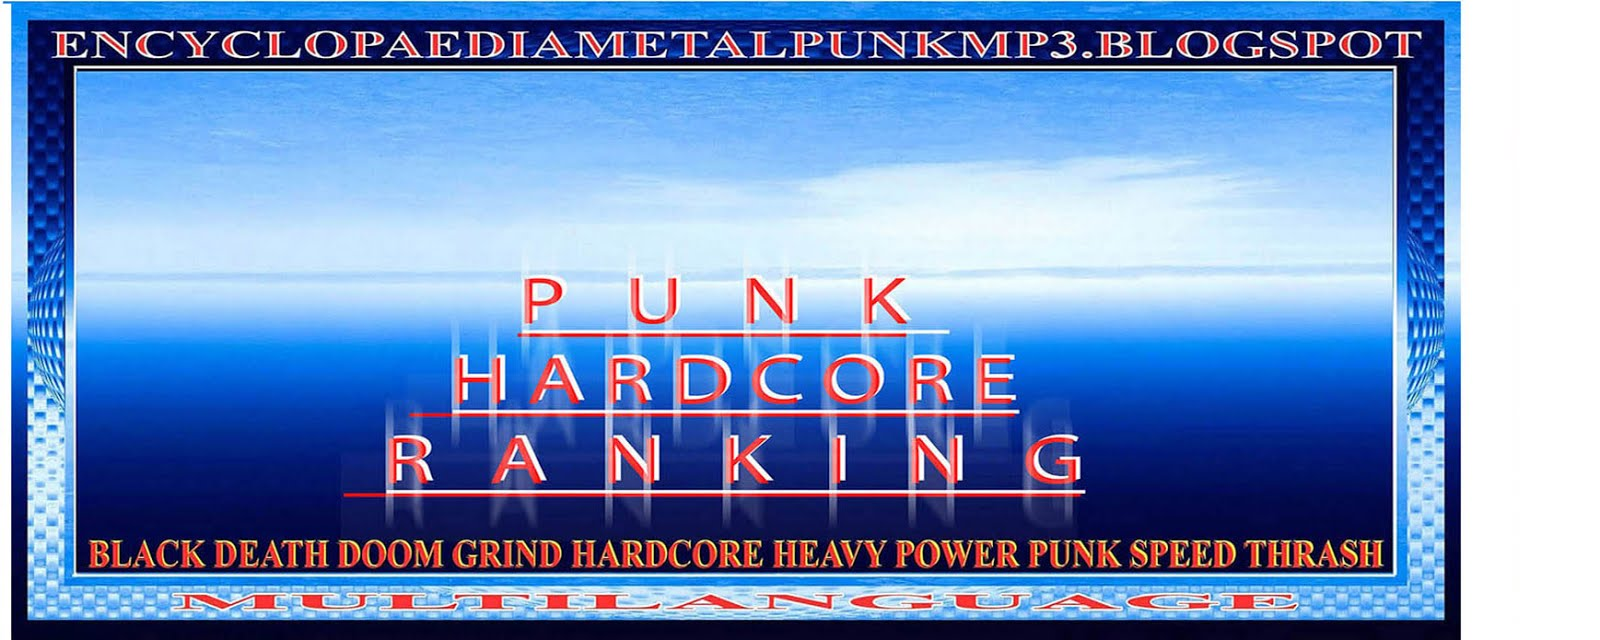 ENCYCLOPAEDIA HC PUNK MP3 RANKING